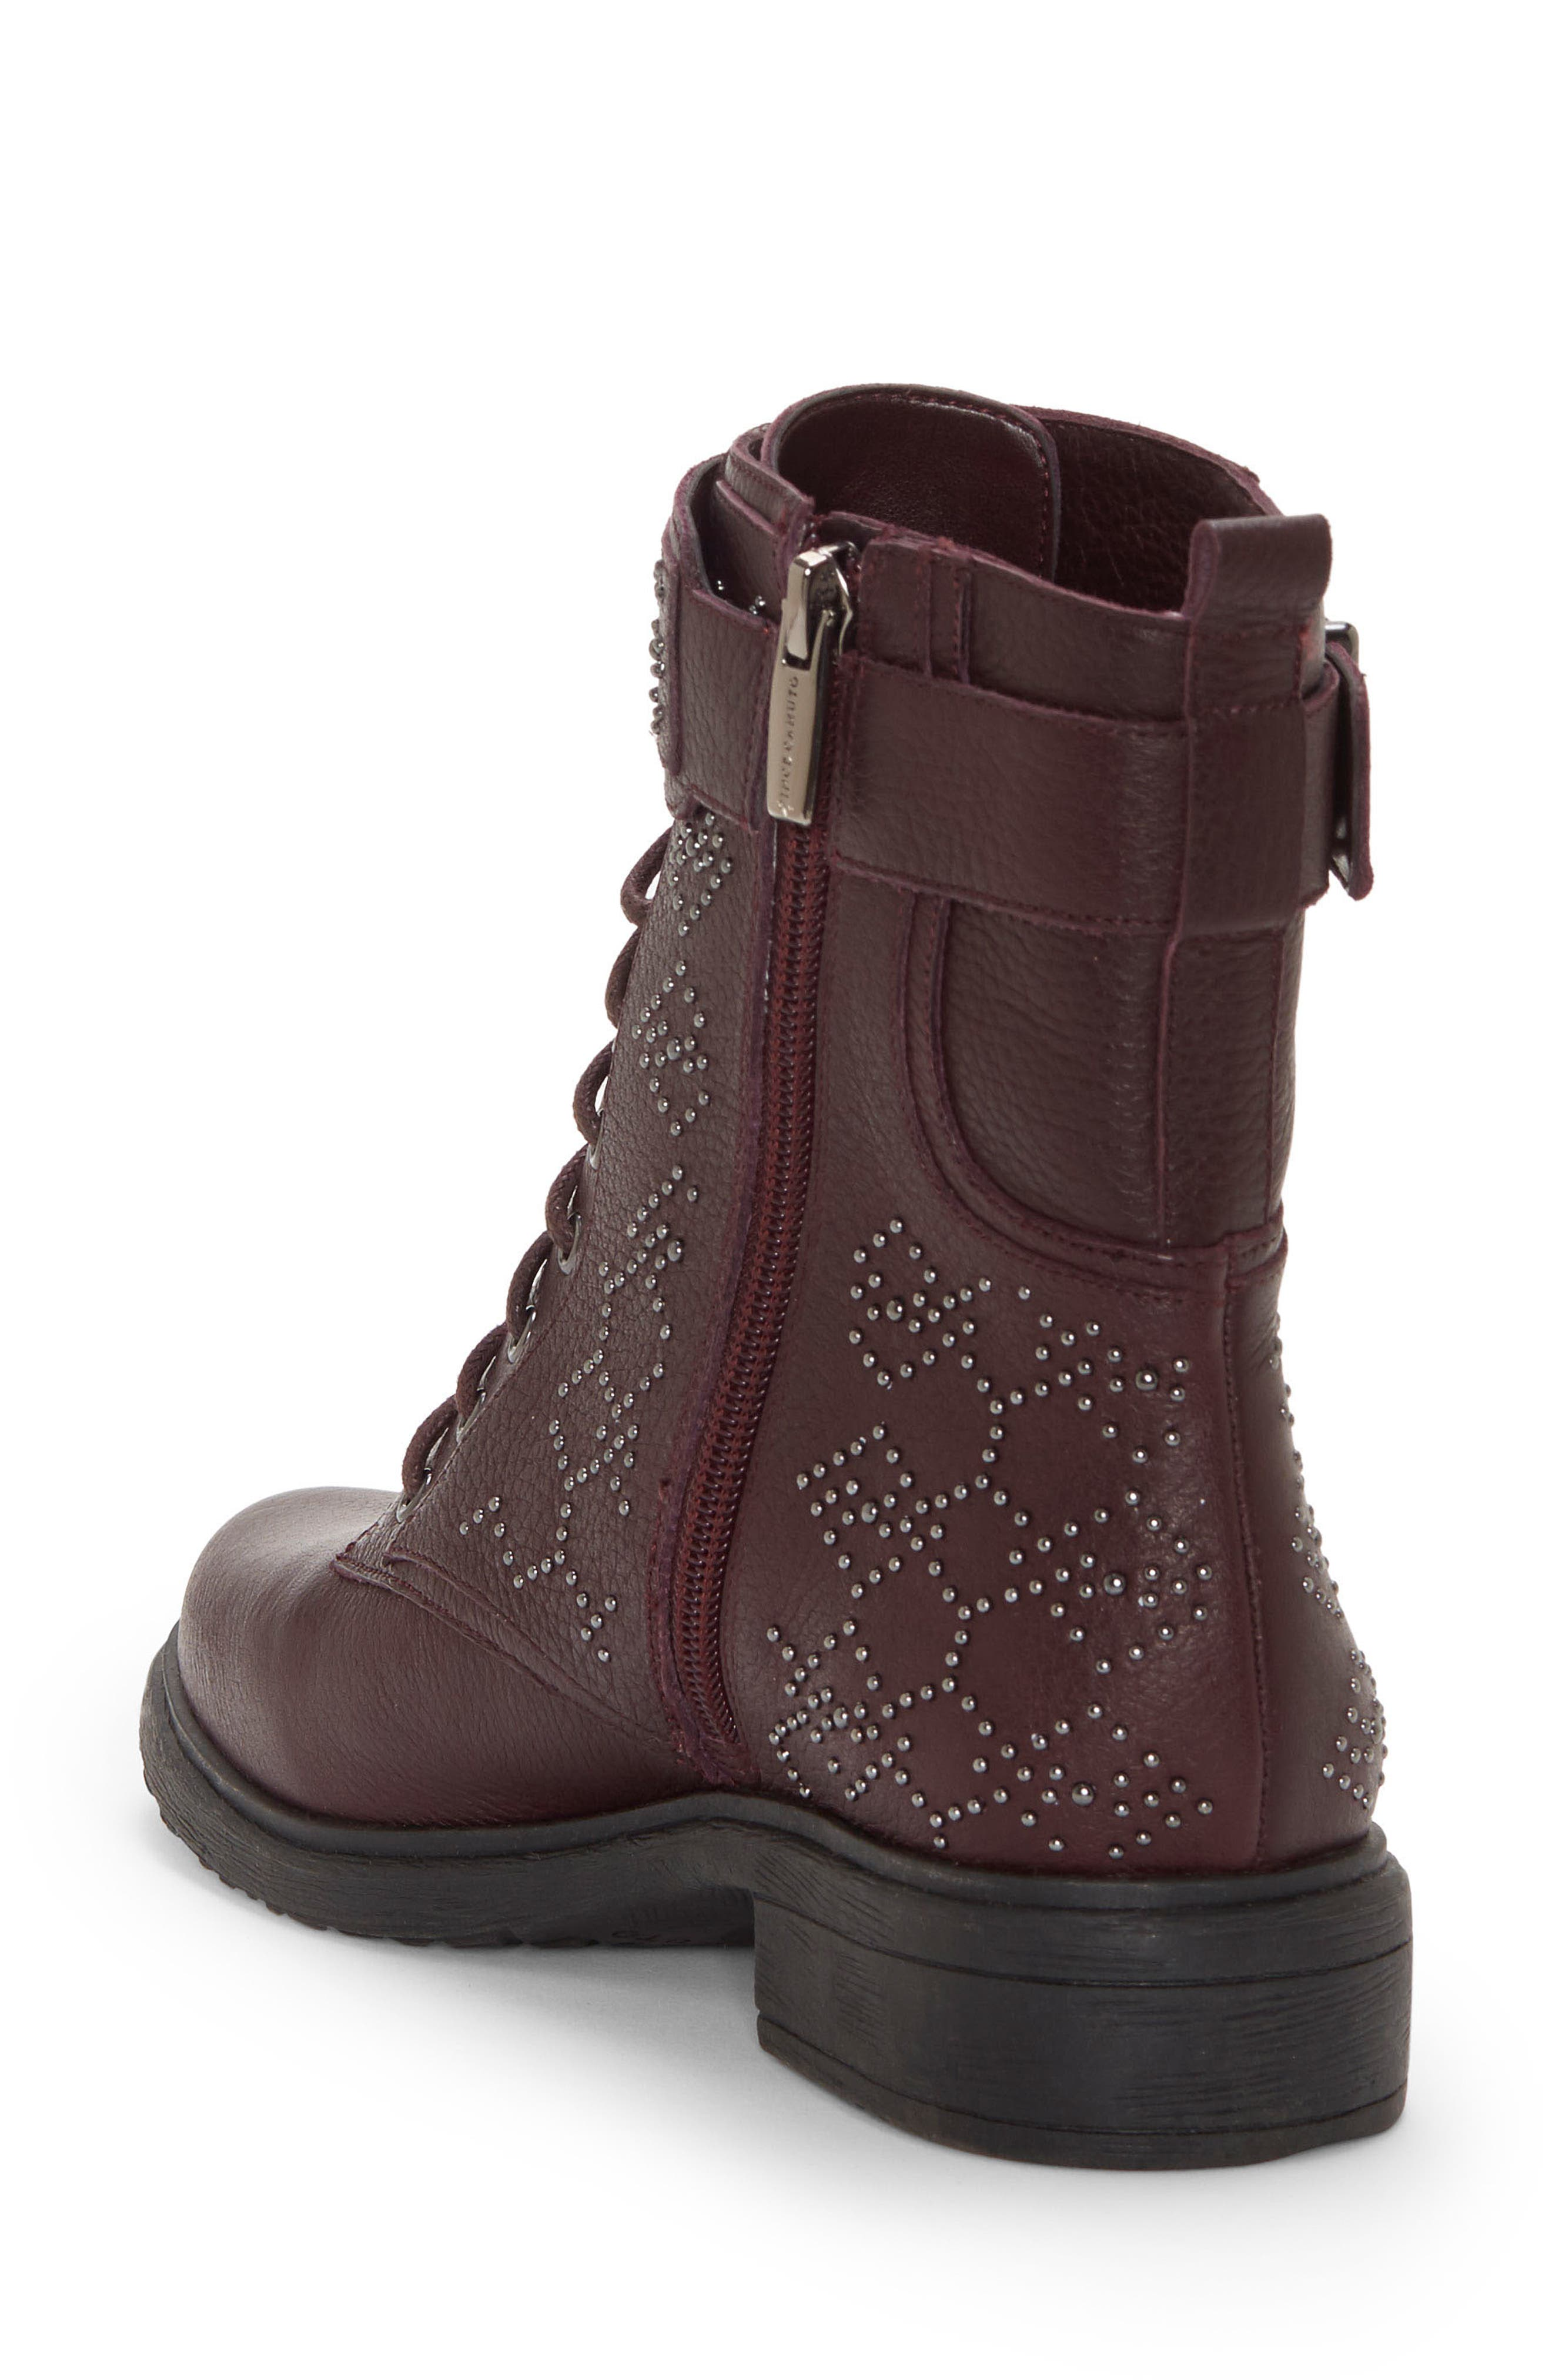 VINCE CAMUTO,                             Tanowie Boot,                             Alternate thumbnail 2, color,                             VAMP LEATHER